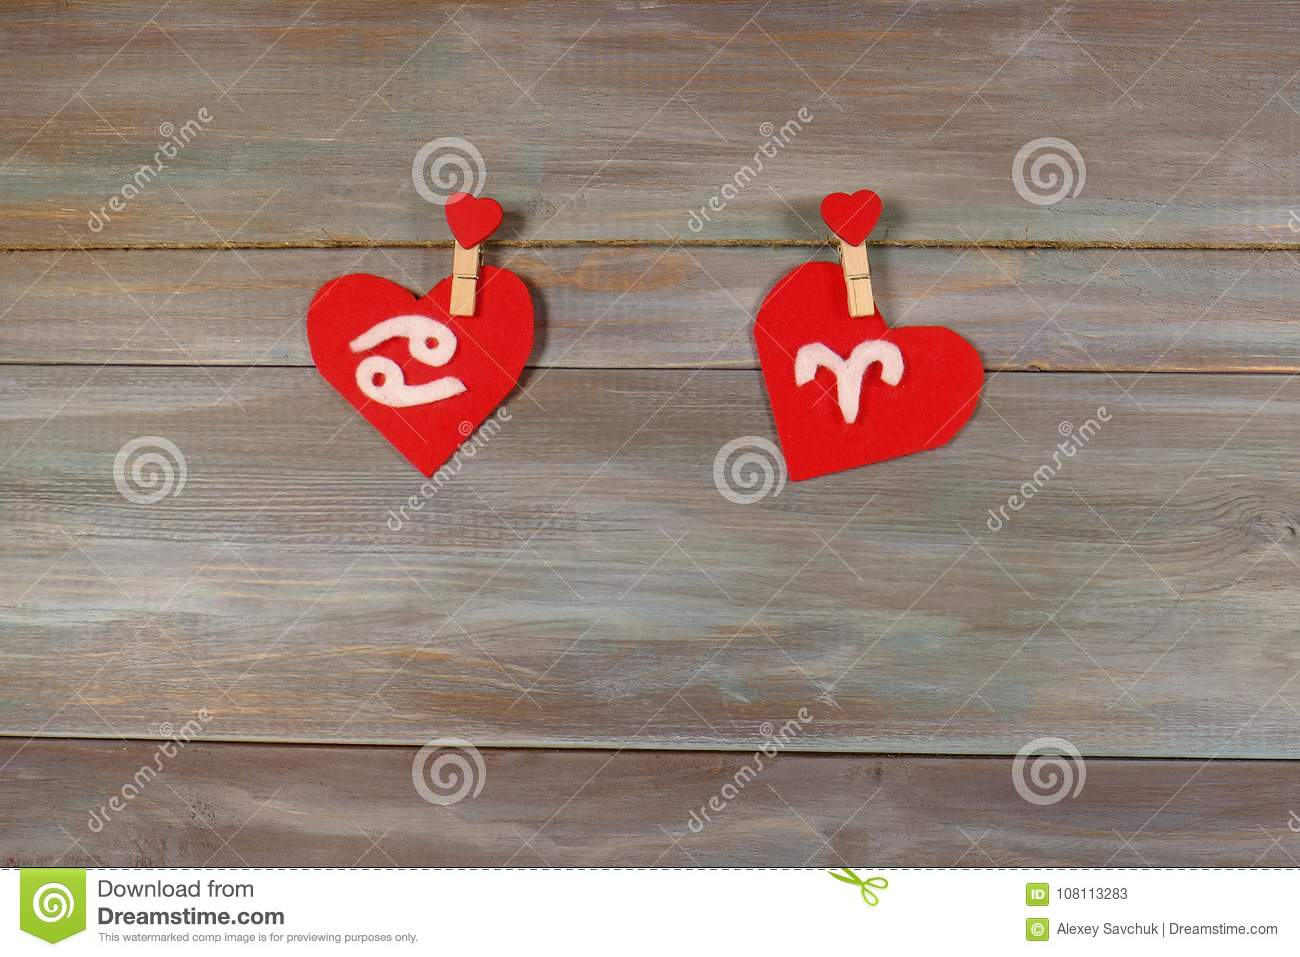 Cancer and Aries. signs of the zodiac and heart. wooden backgrou